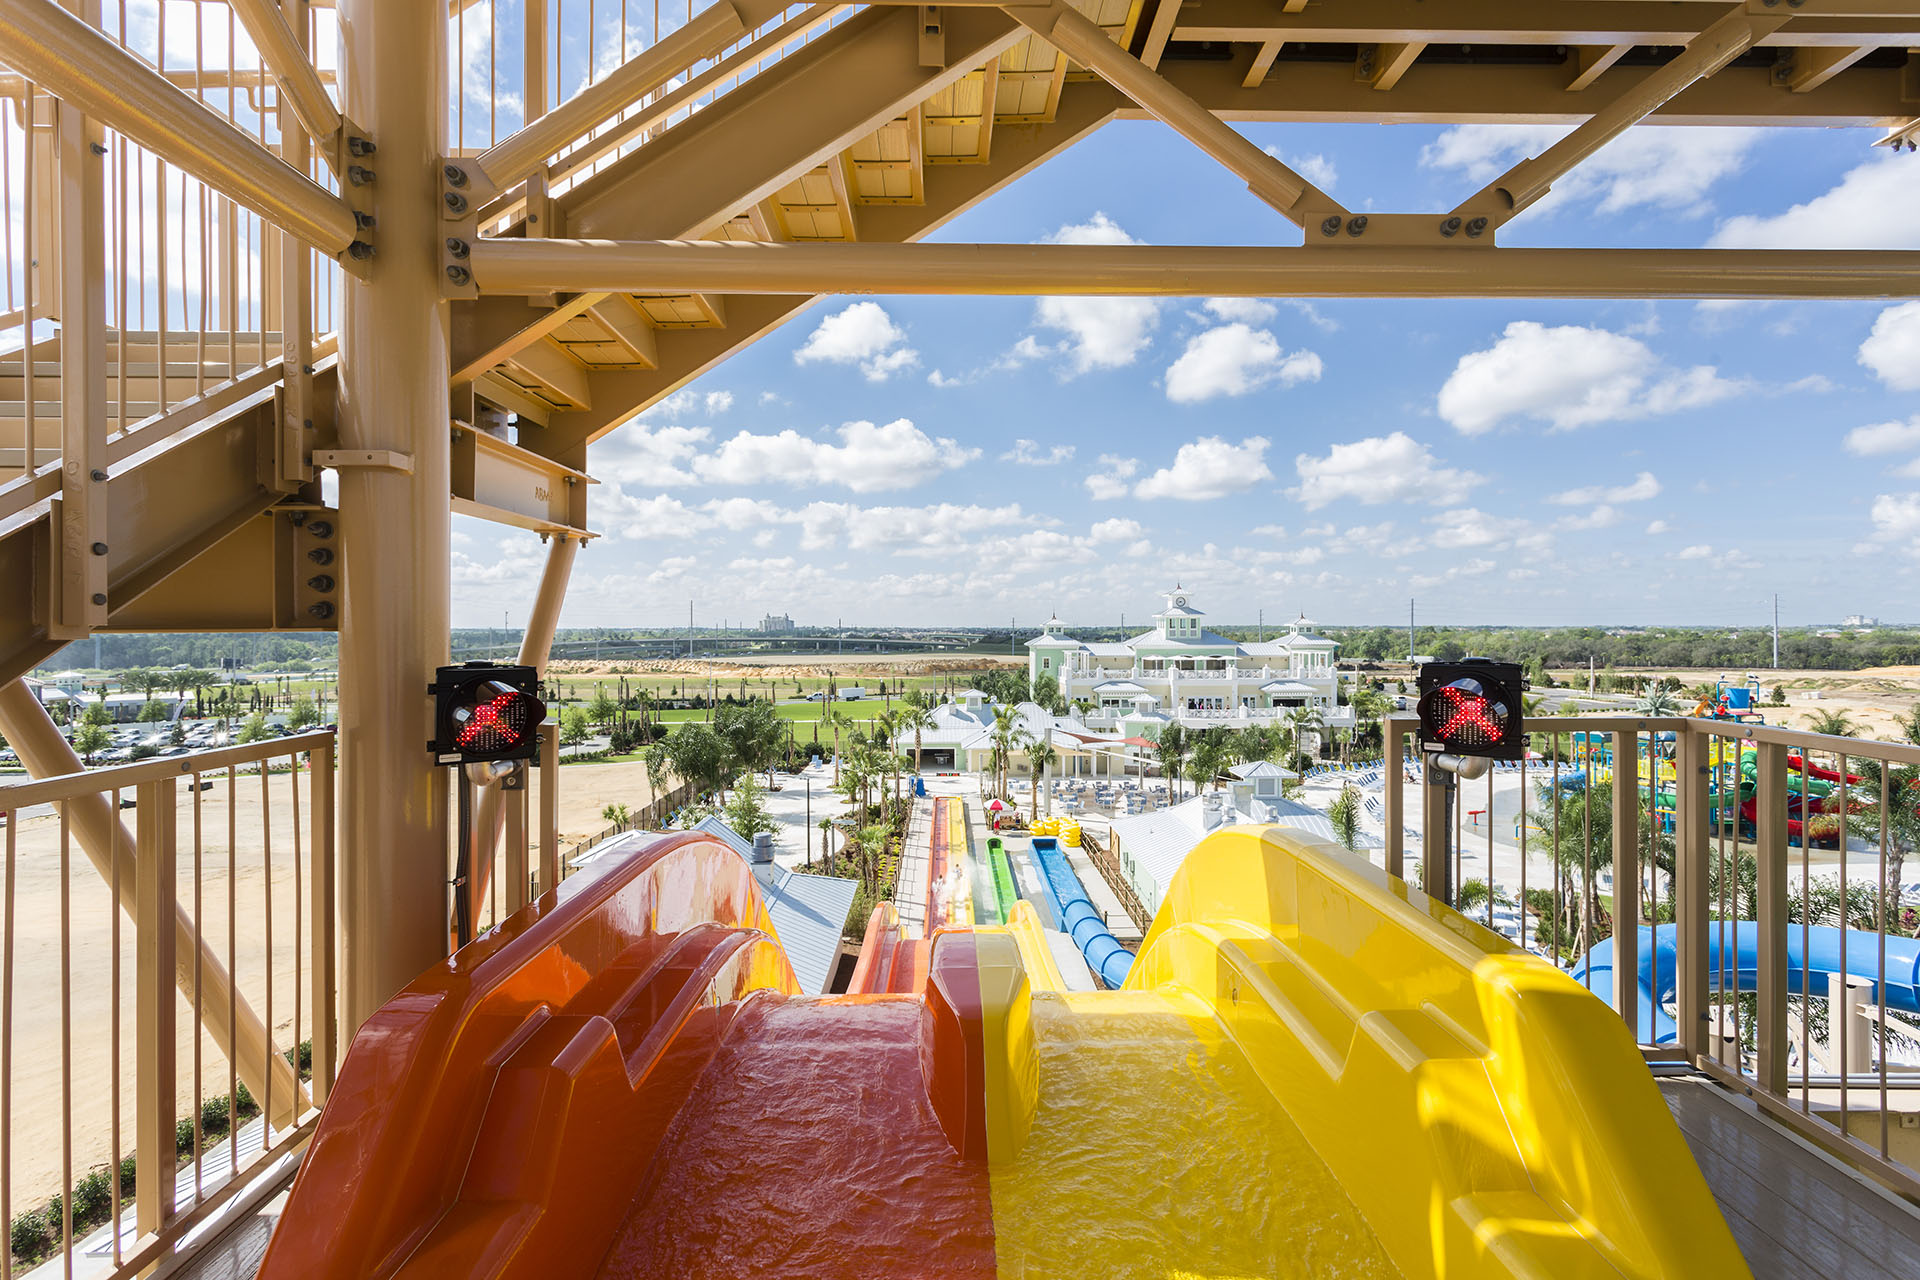 Encore Club at Reunion Water Slides